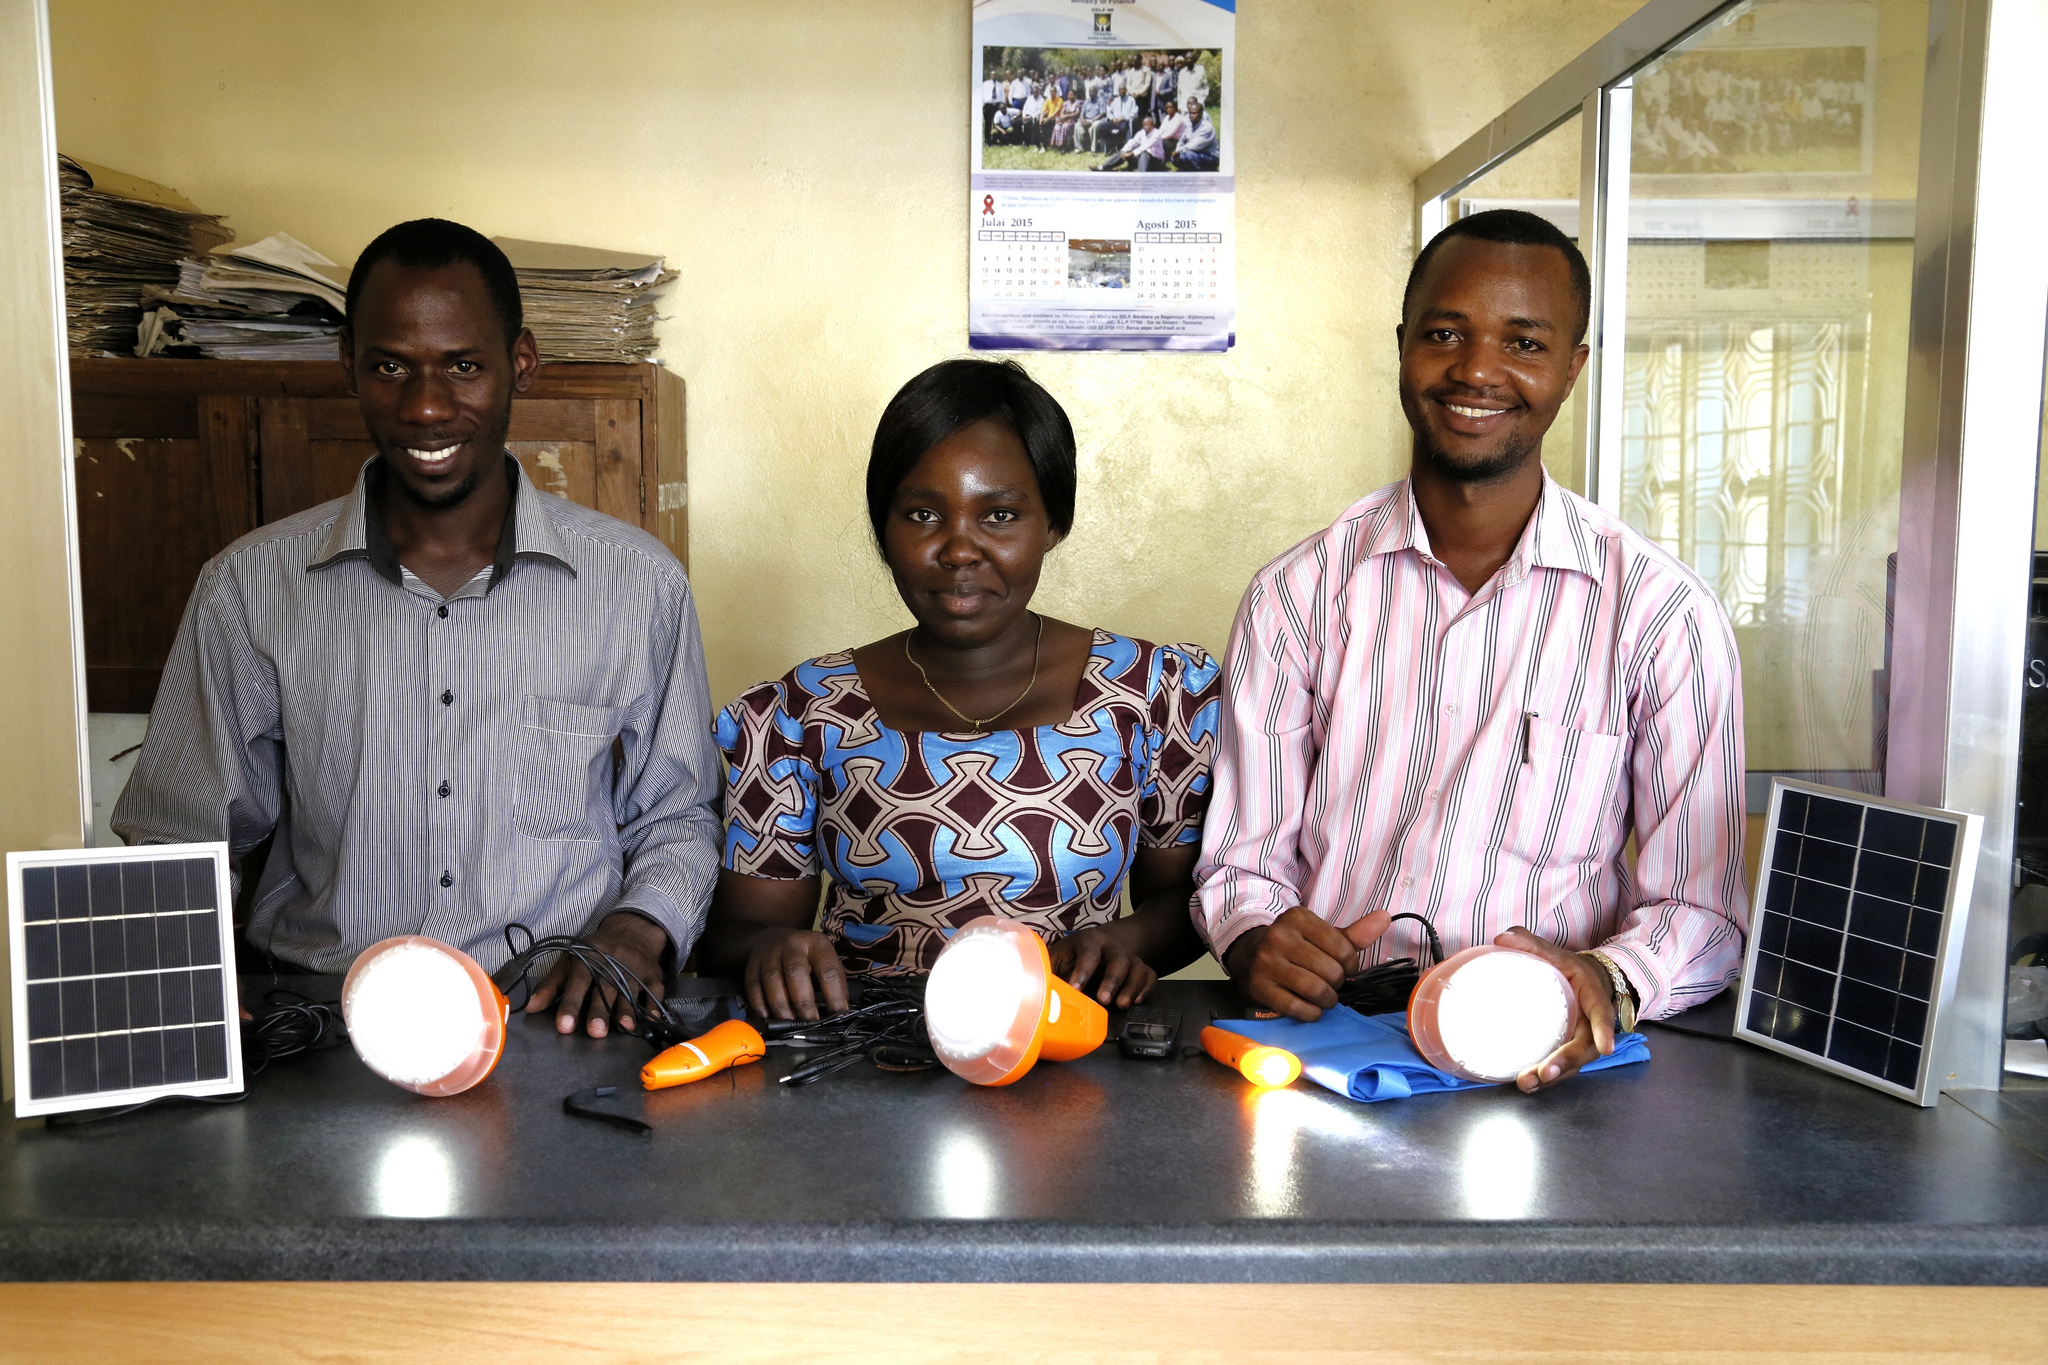 <p>Innovative financing enabled these Tanzanians to procure solar technology. Photo by DFID/Flickr</p>